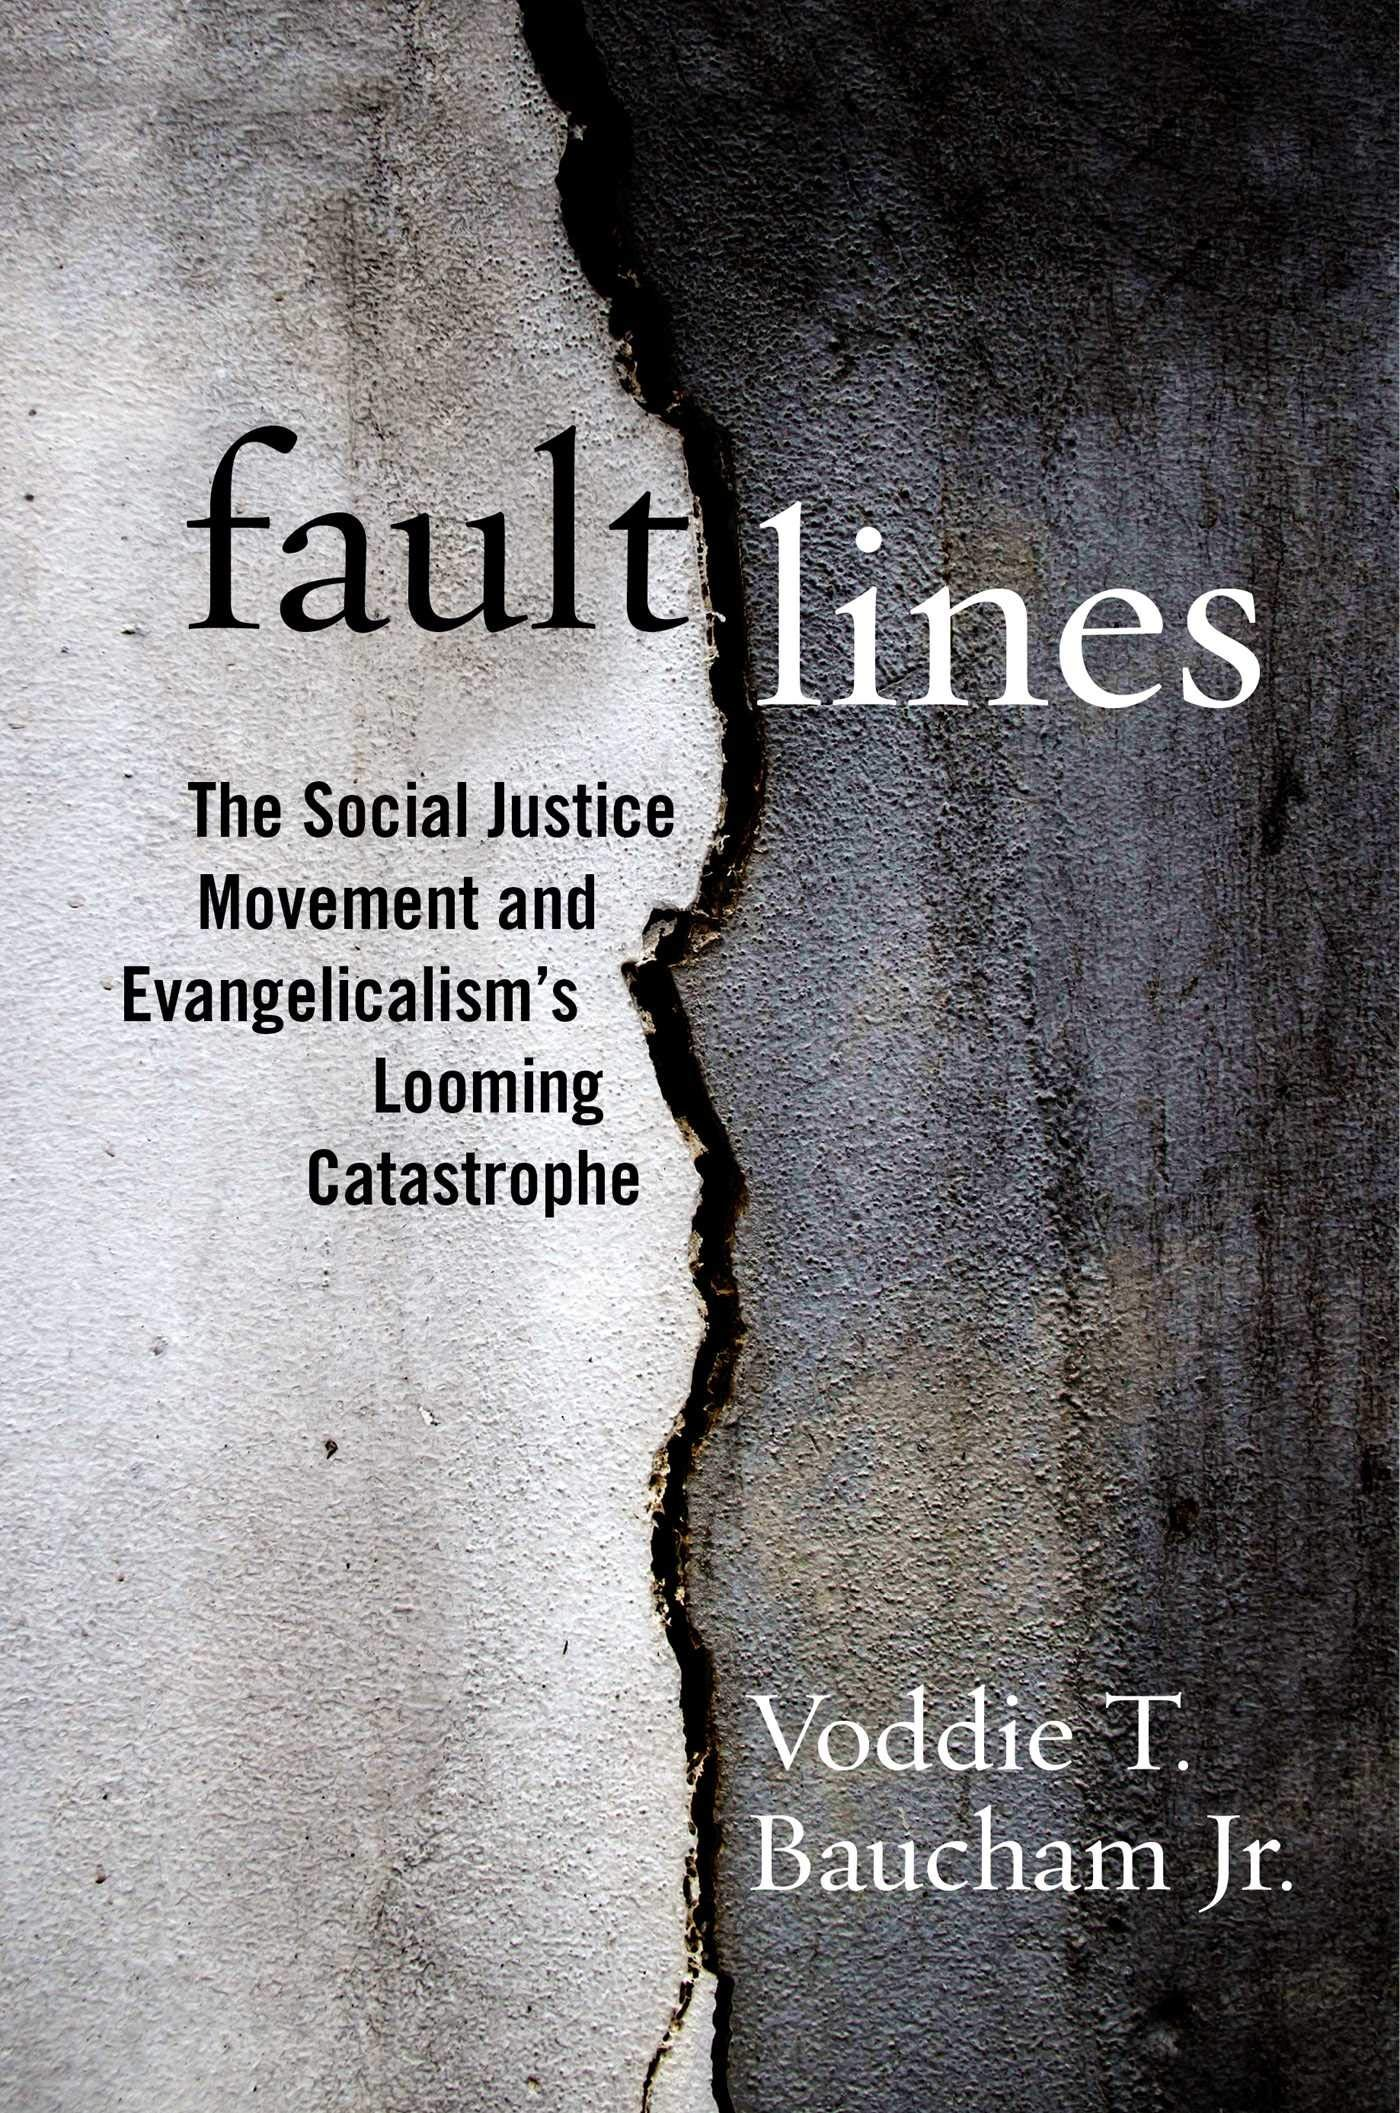 Voddie Baucham-- Fault Lines: The Social Justice Movement and Evangelicalism's Looming Catastrophe 1